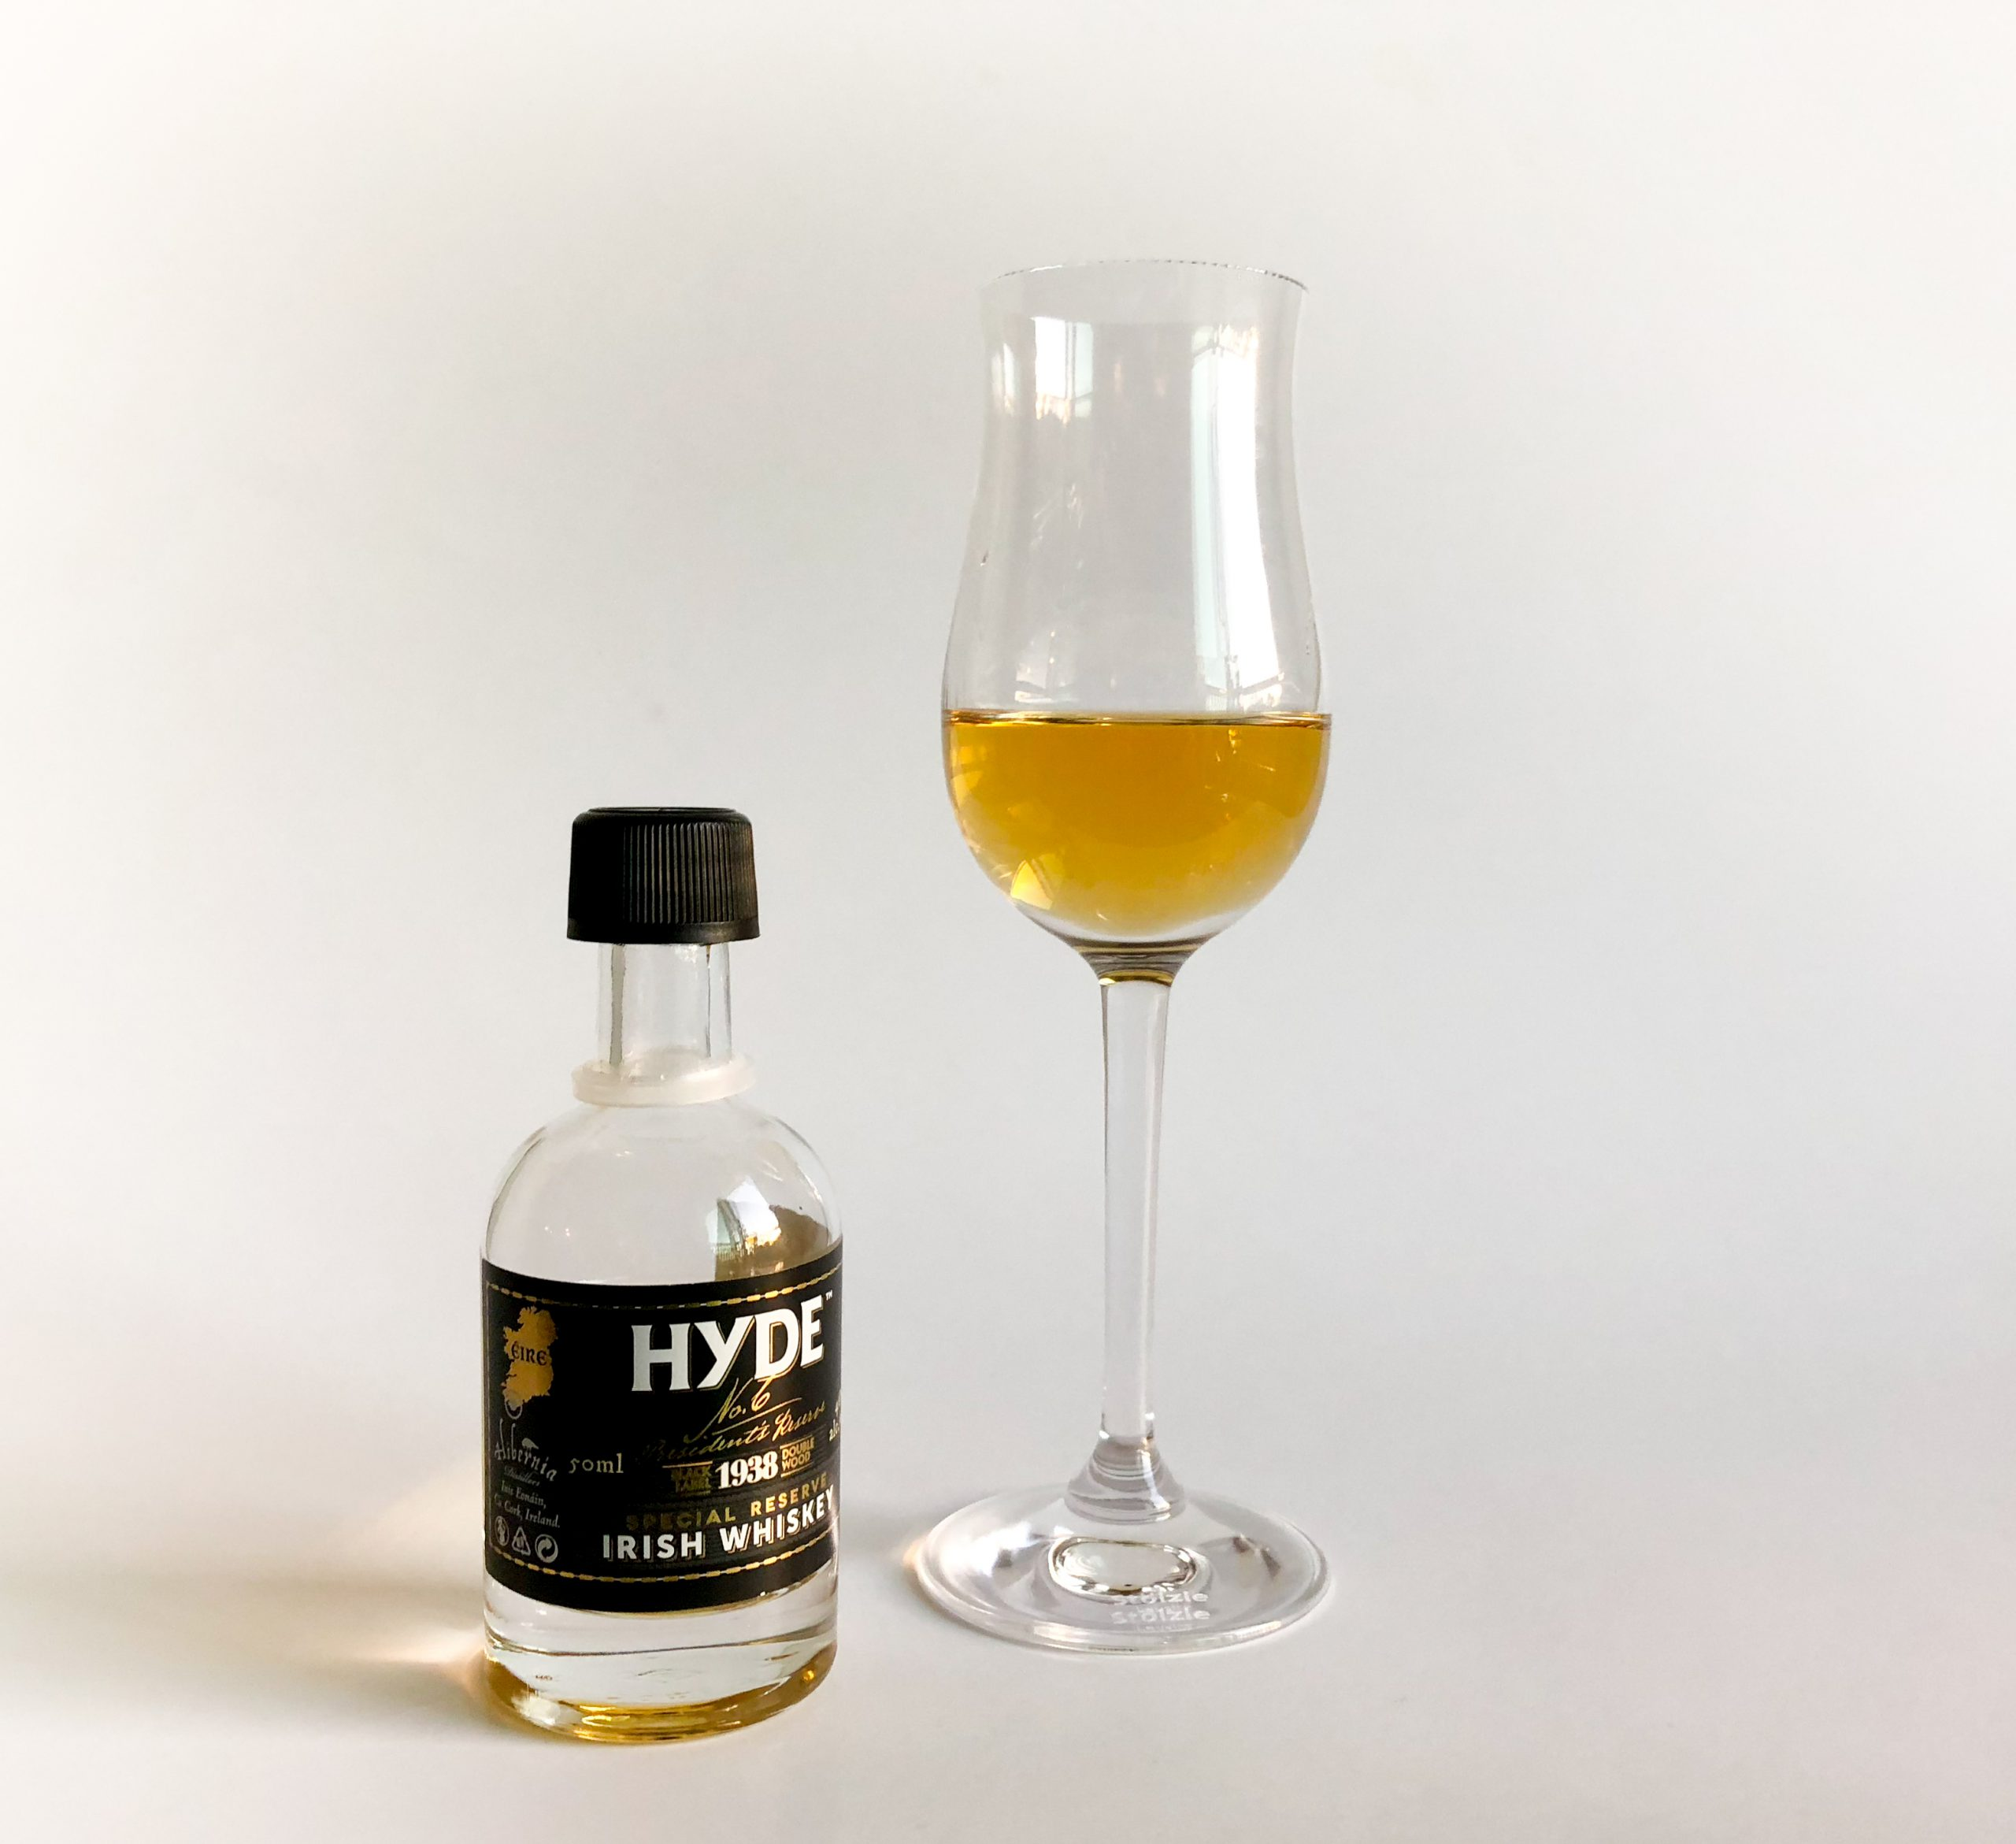 Hyde 1938 Special Reserve Irish Whiskey